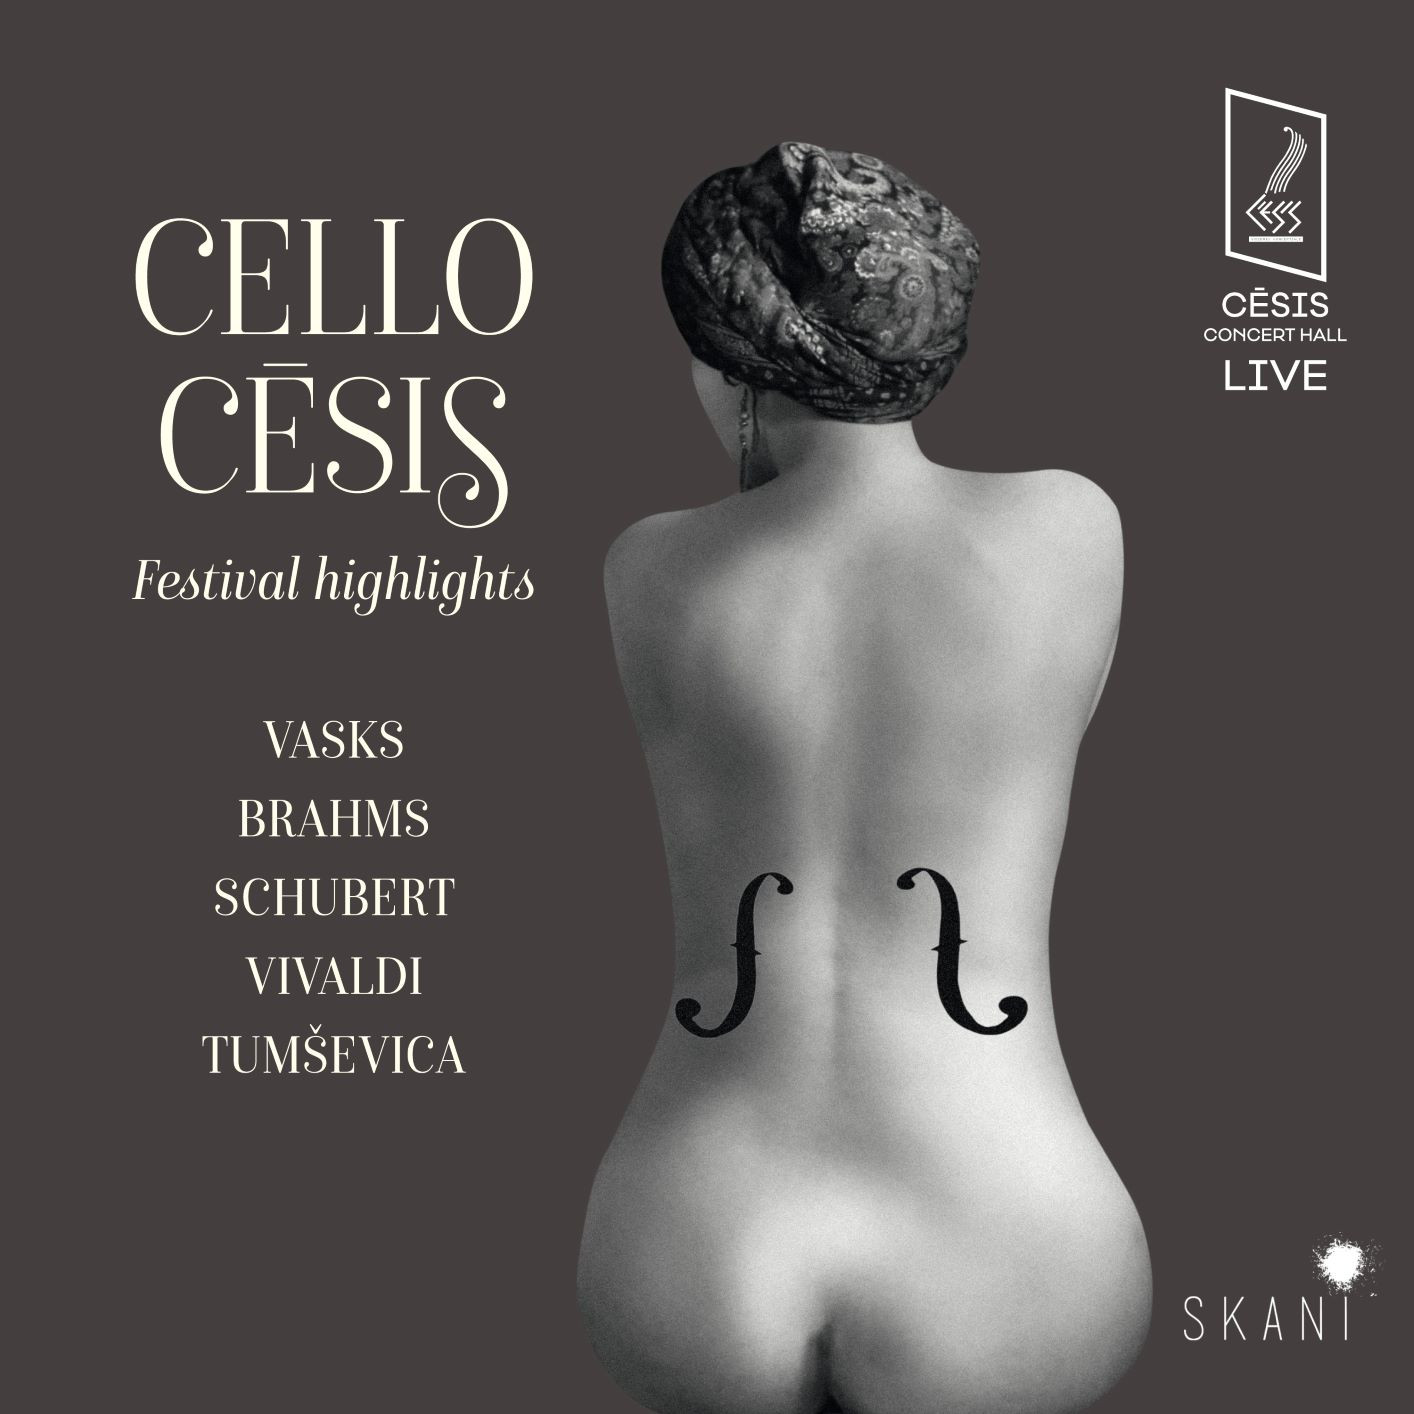 Cello Cēsis: Festival highlights